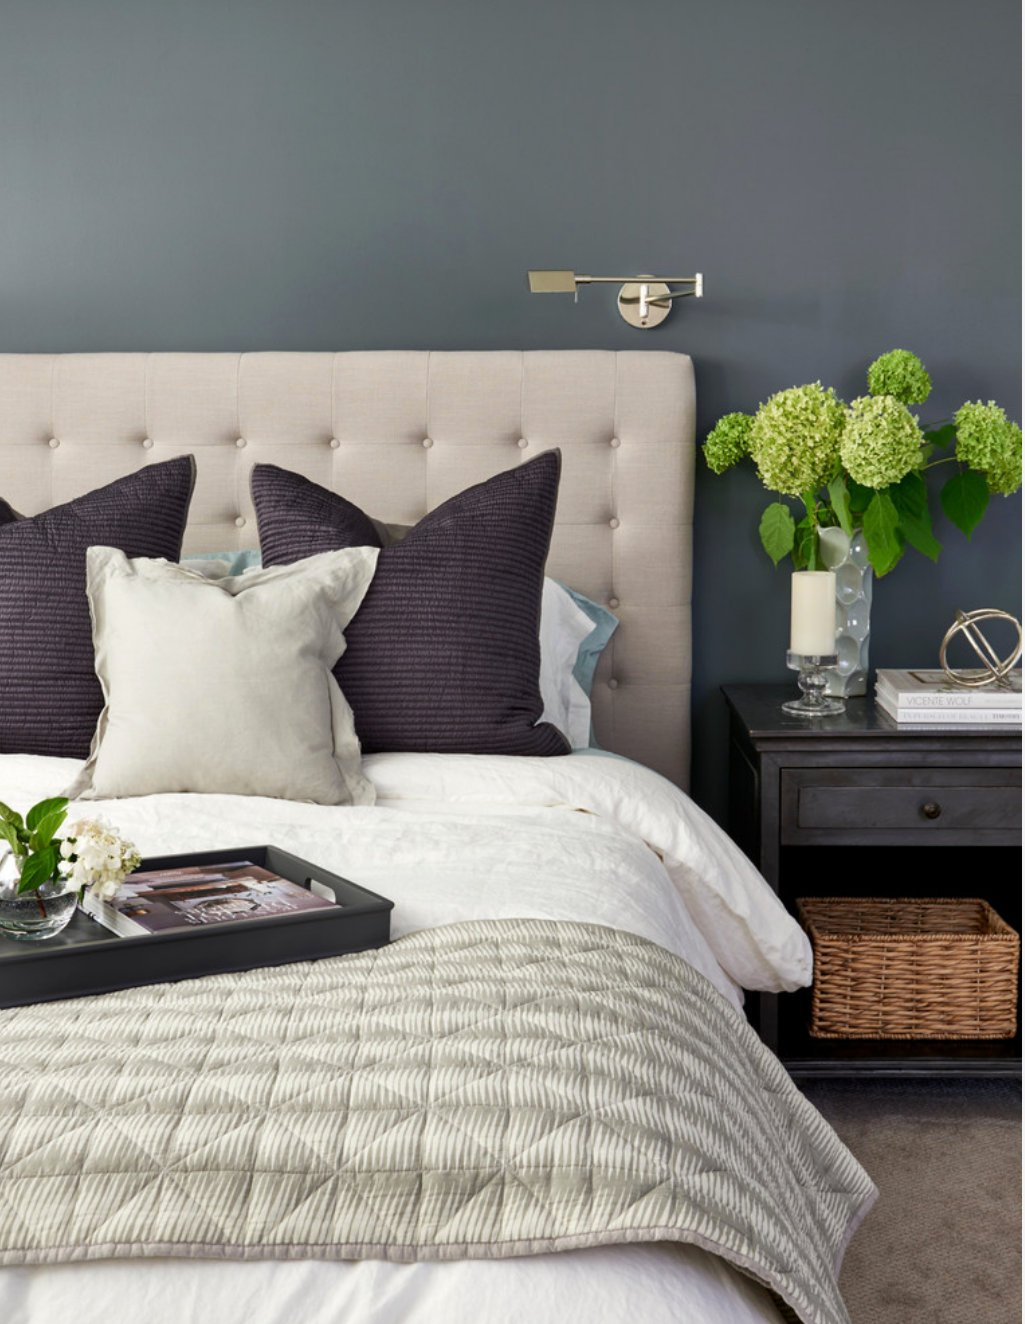 Wall Color is Benjamin Moore Knoxville Gray